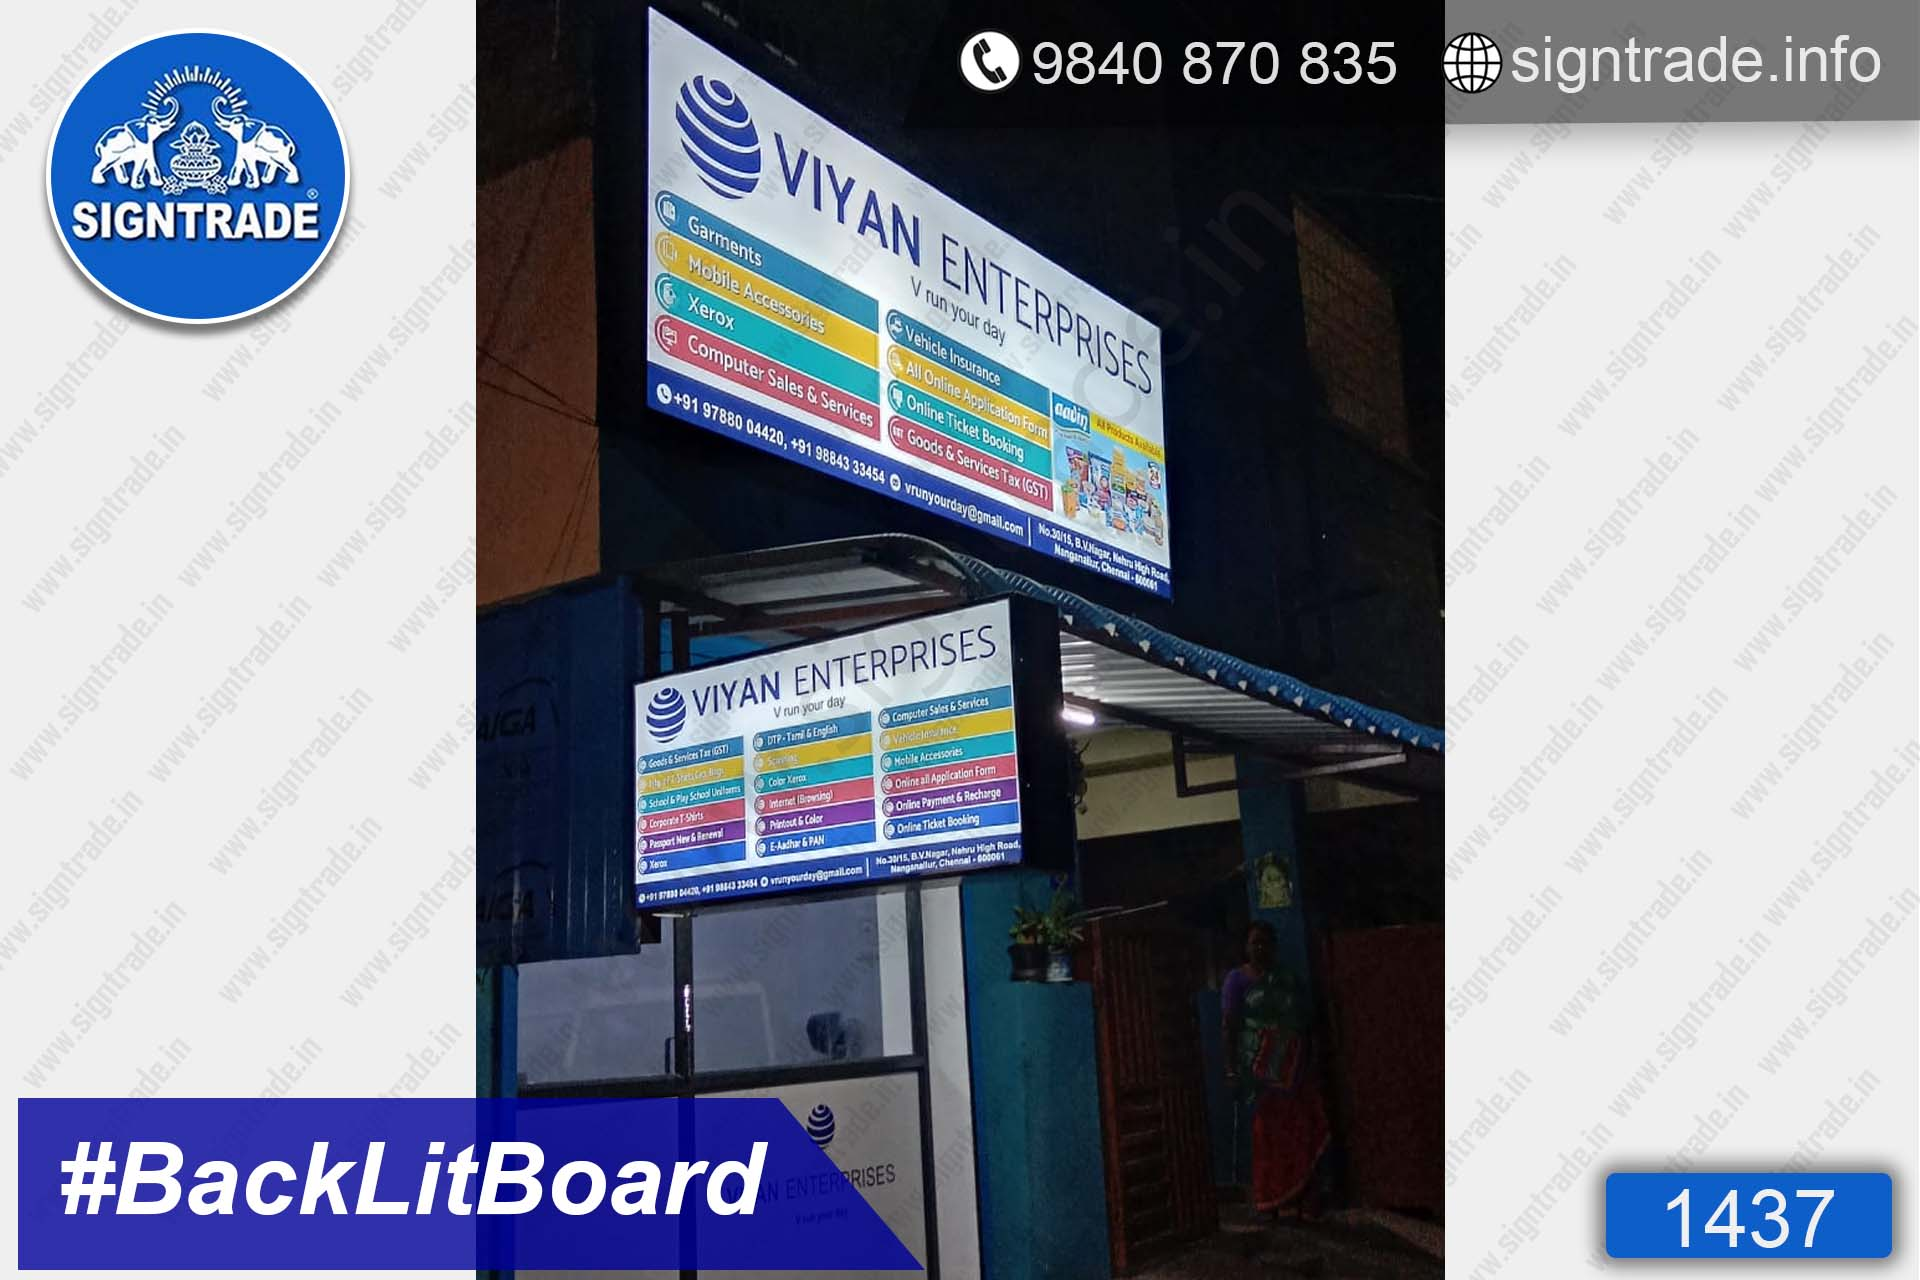 Viyan Enterprises - 1437, Flex Board, Frontlit Flex Board, Star Frontlit Flex Board, Frontlit Flex Banners, Shop Front Flex Board, Shop Flex Board, Star Flex